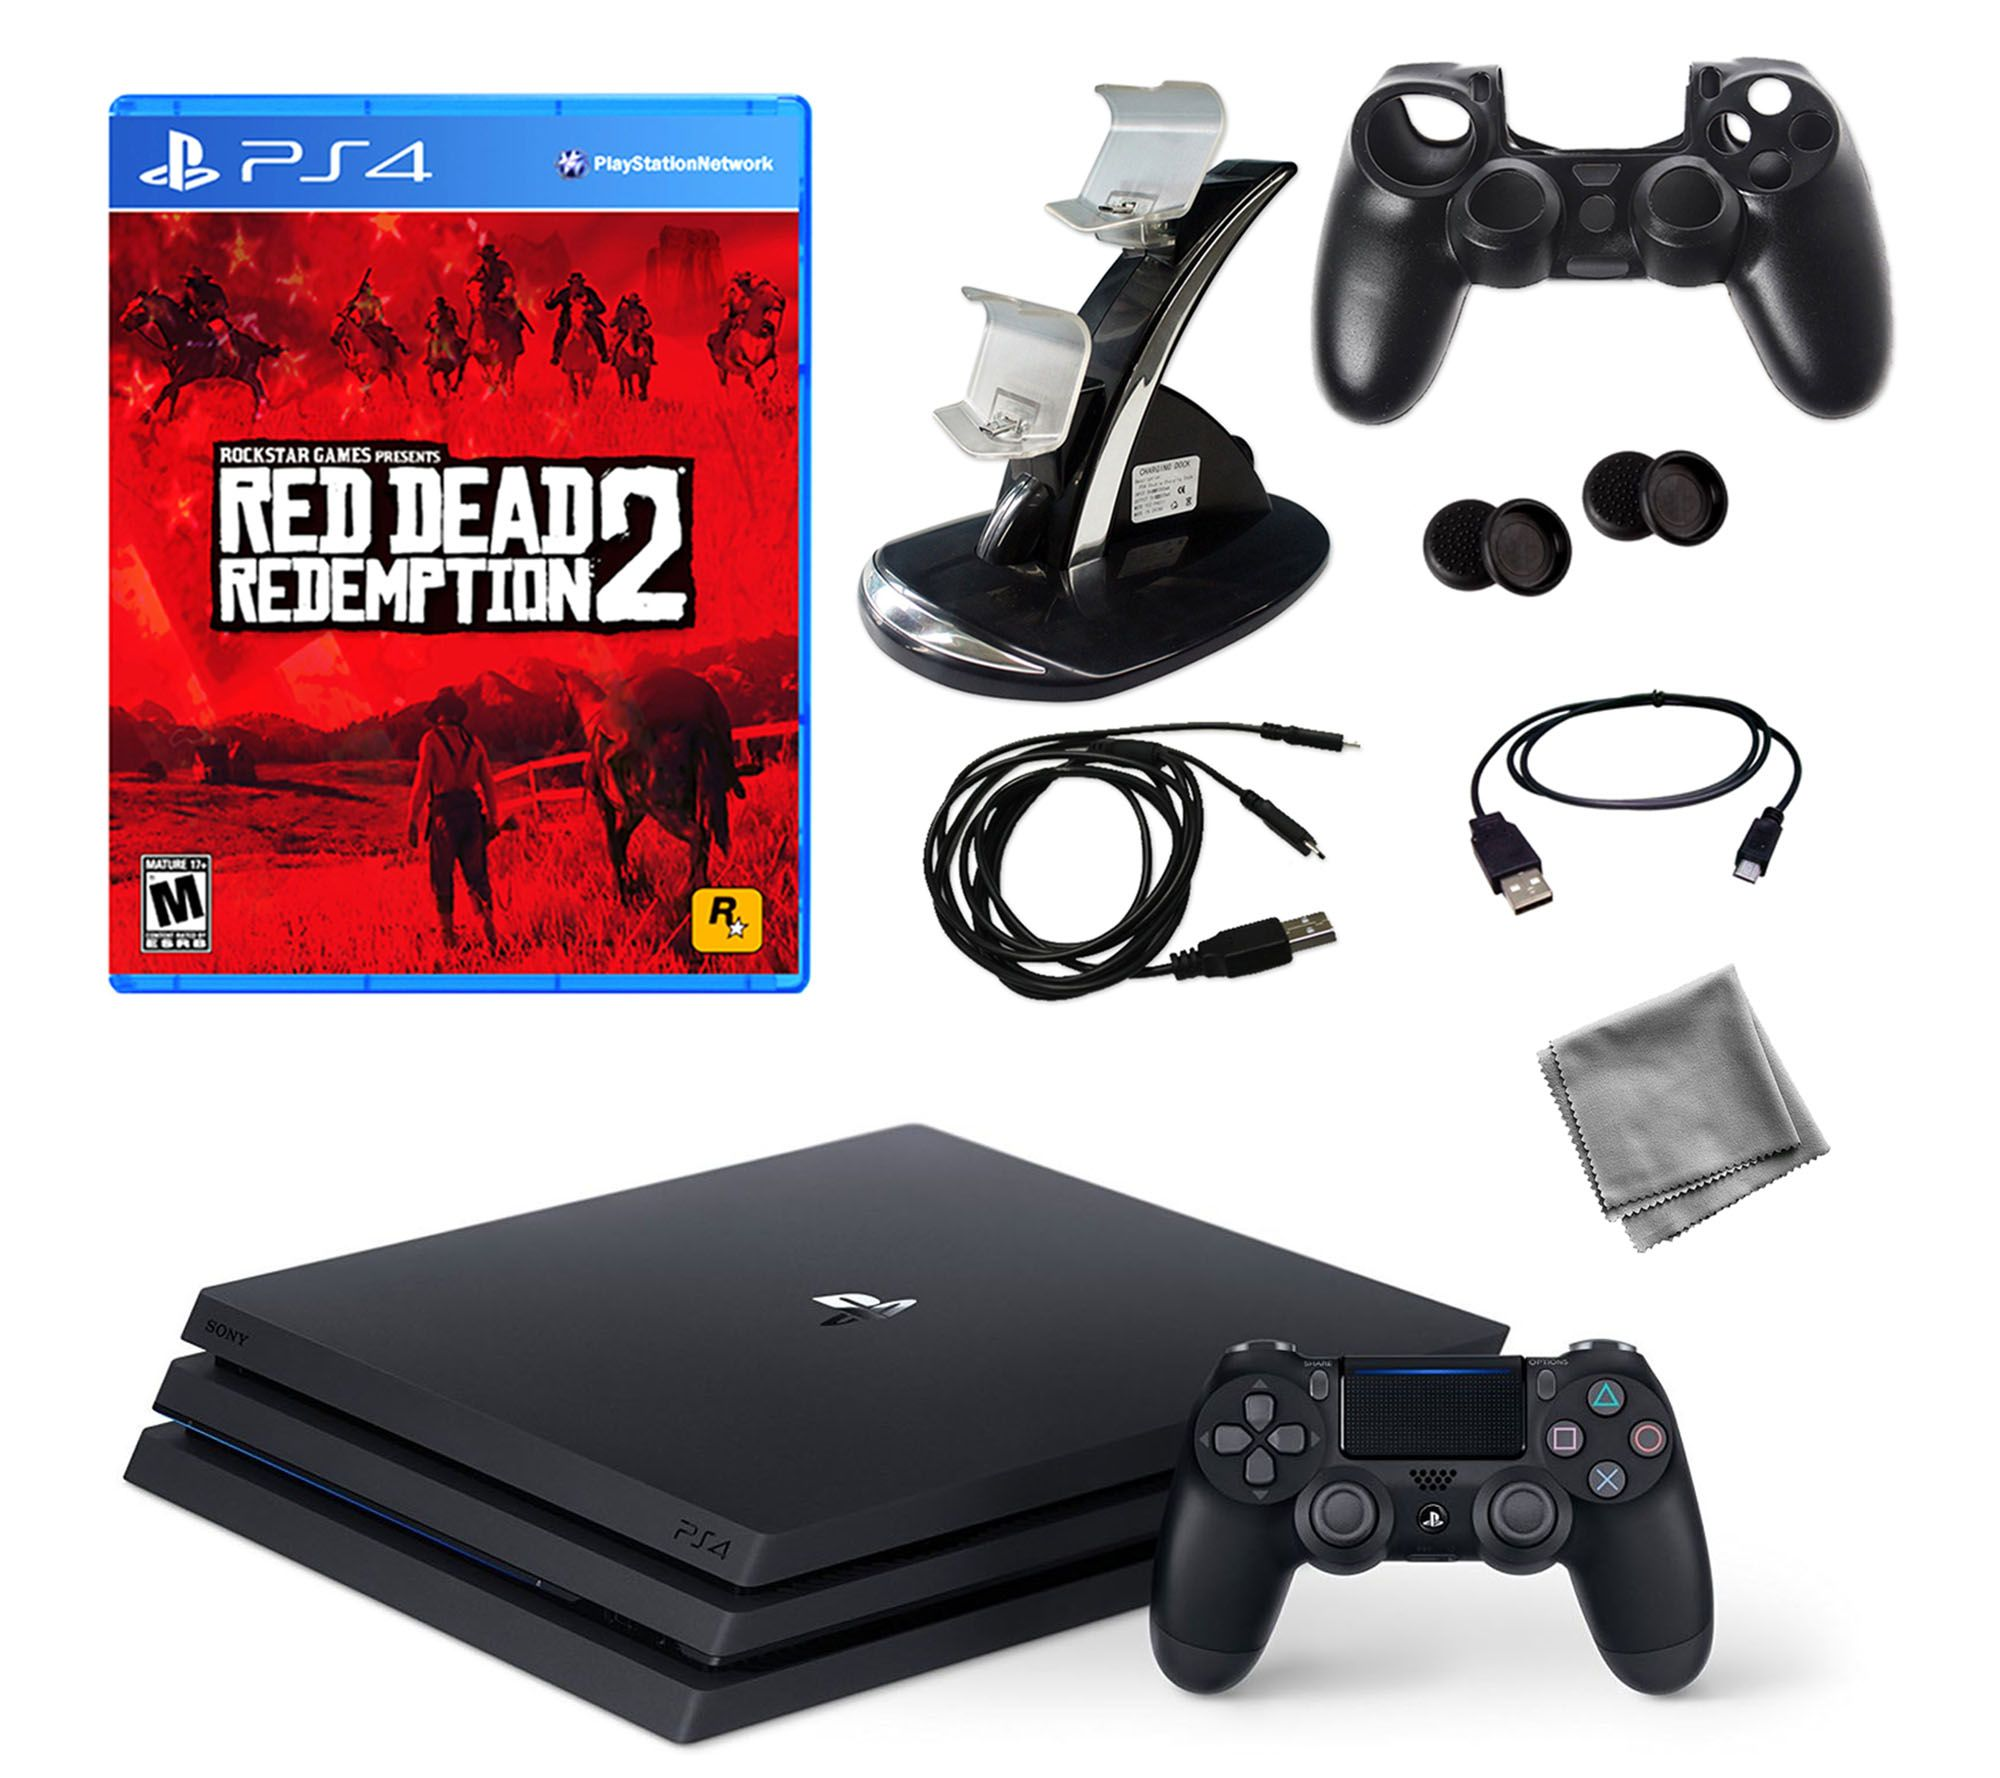 PS4 Pro 1TB Console with Red Dead Redemption 2 & Accessories — QVC com